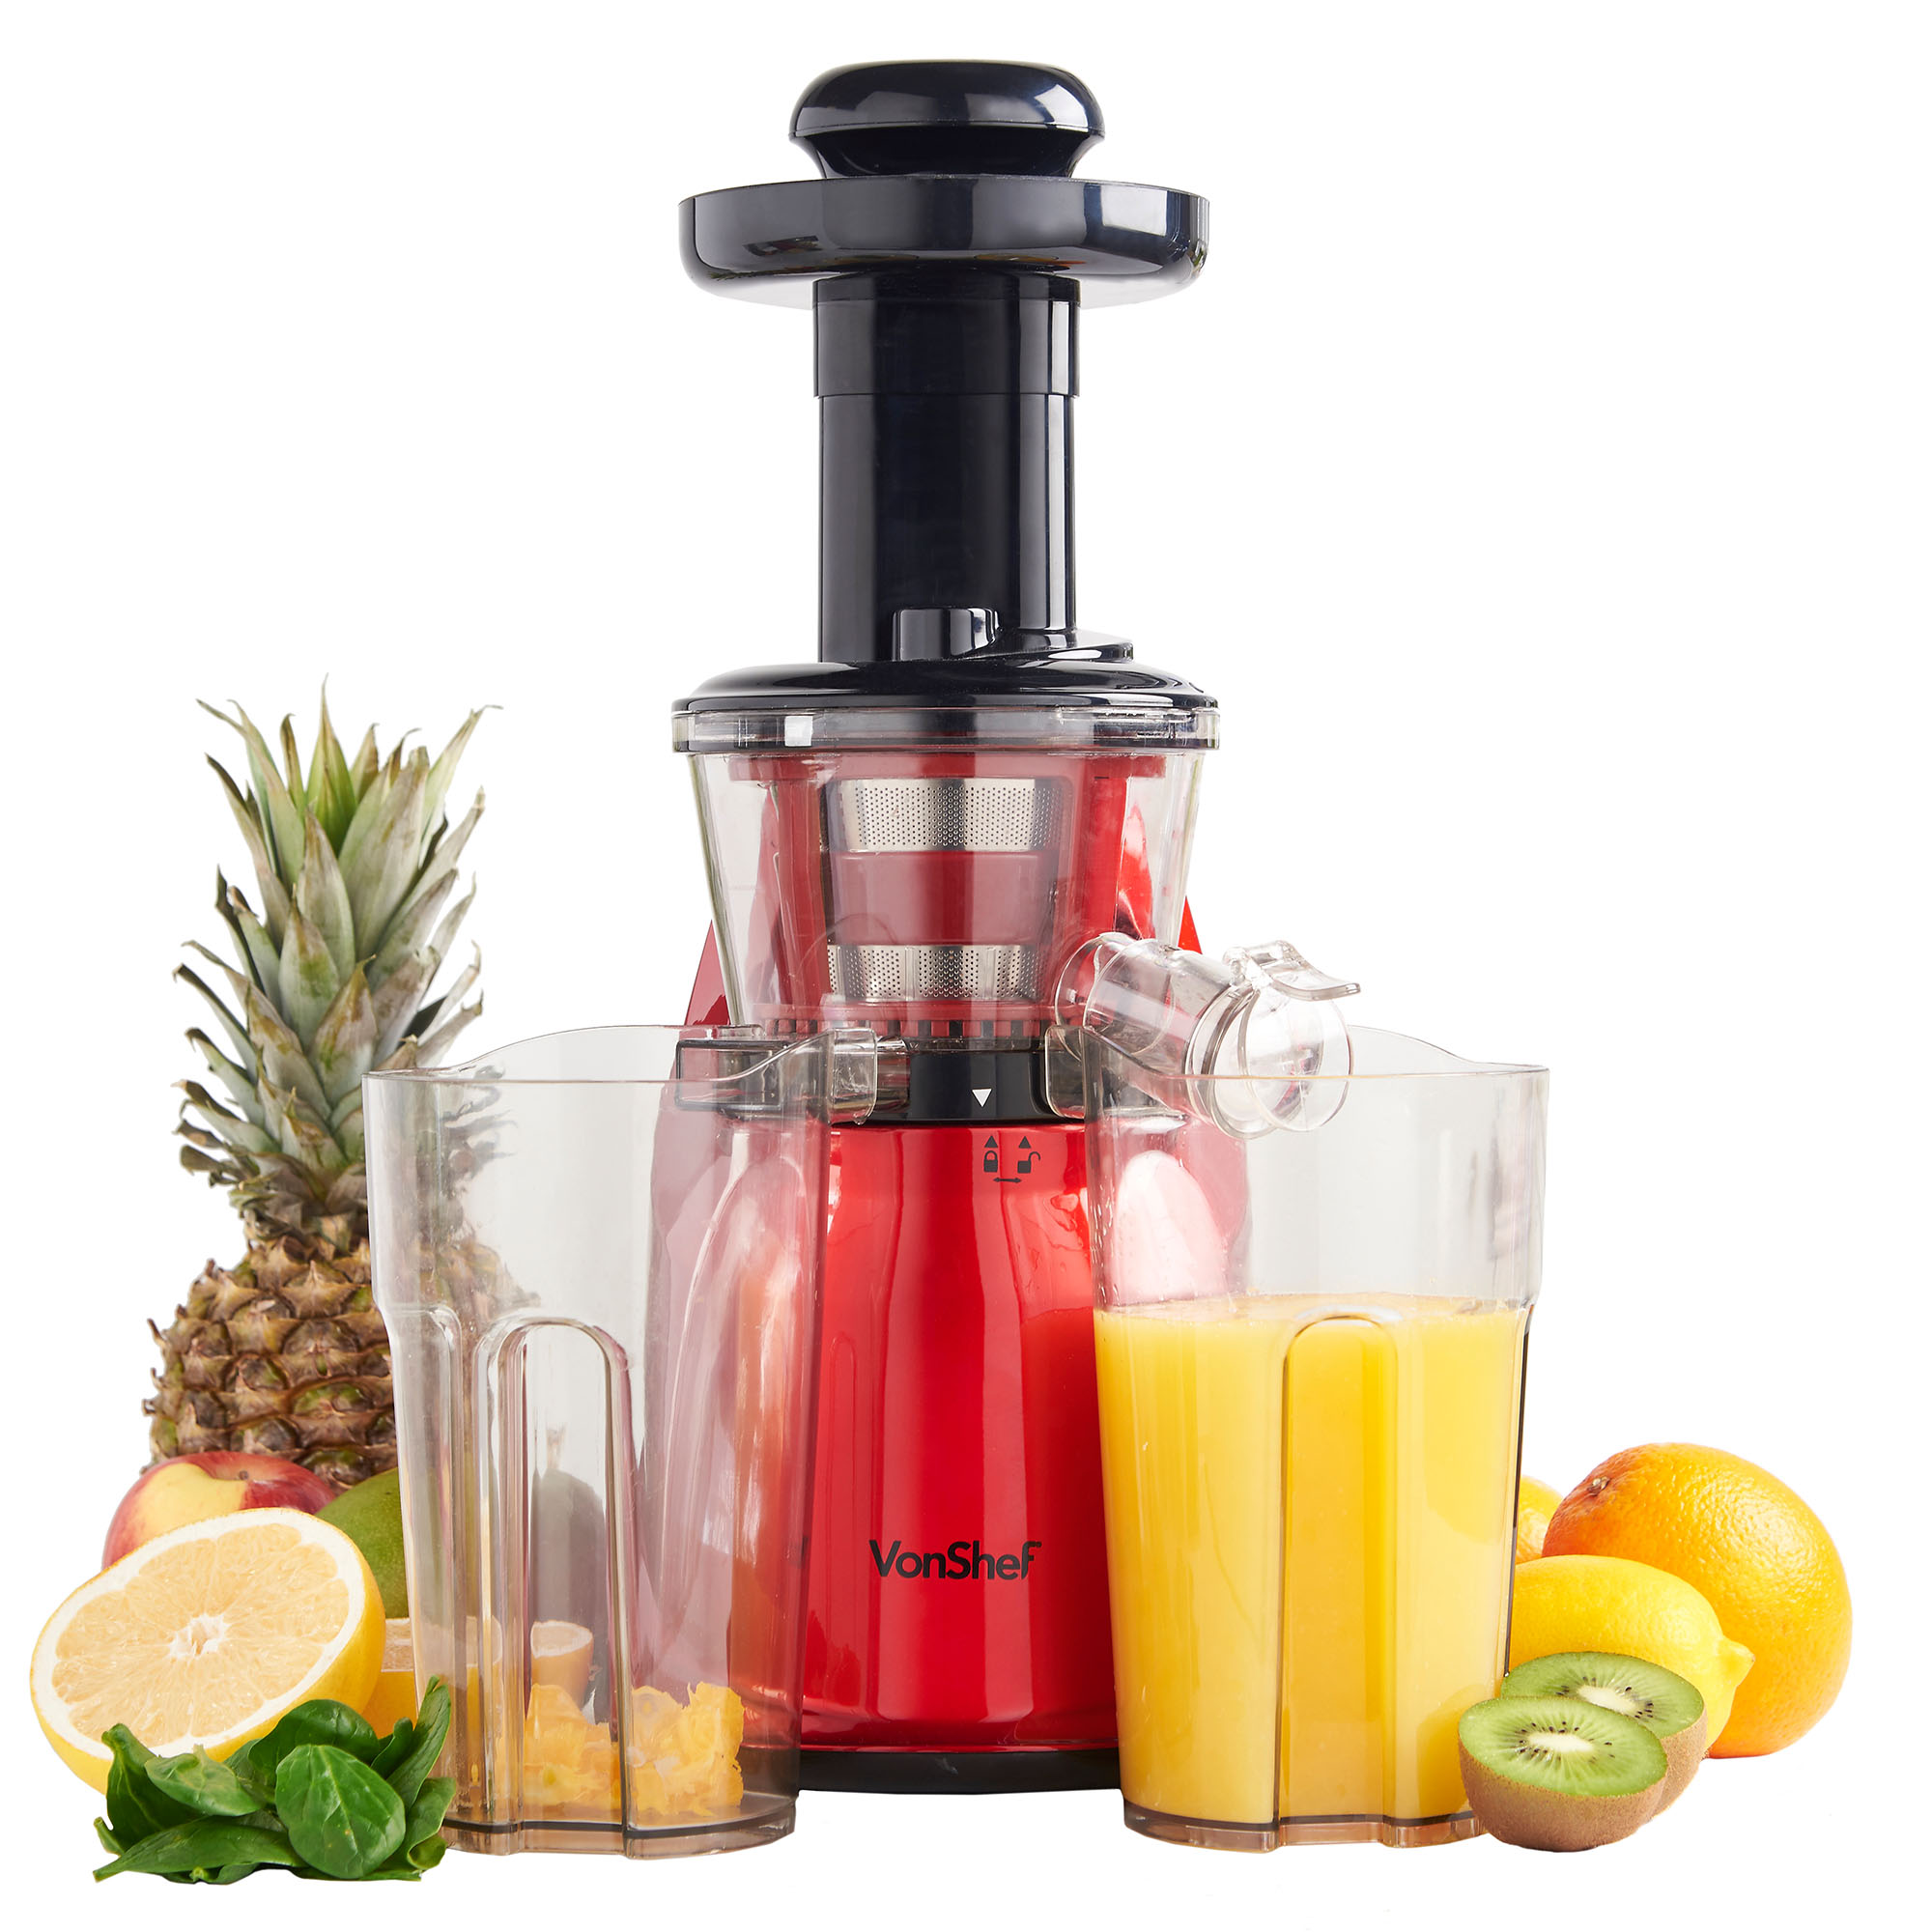 Vonshef Slow Juicer Horizontal Masticating Juice Extractor Wheatgrass Fruit : vonShef Premium Slow Masticating Juicer Electric vegetable ...